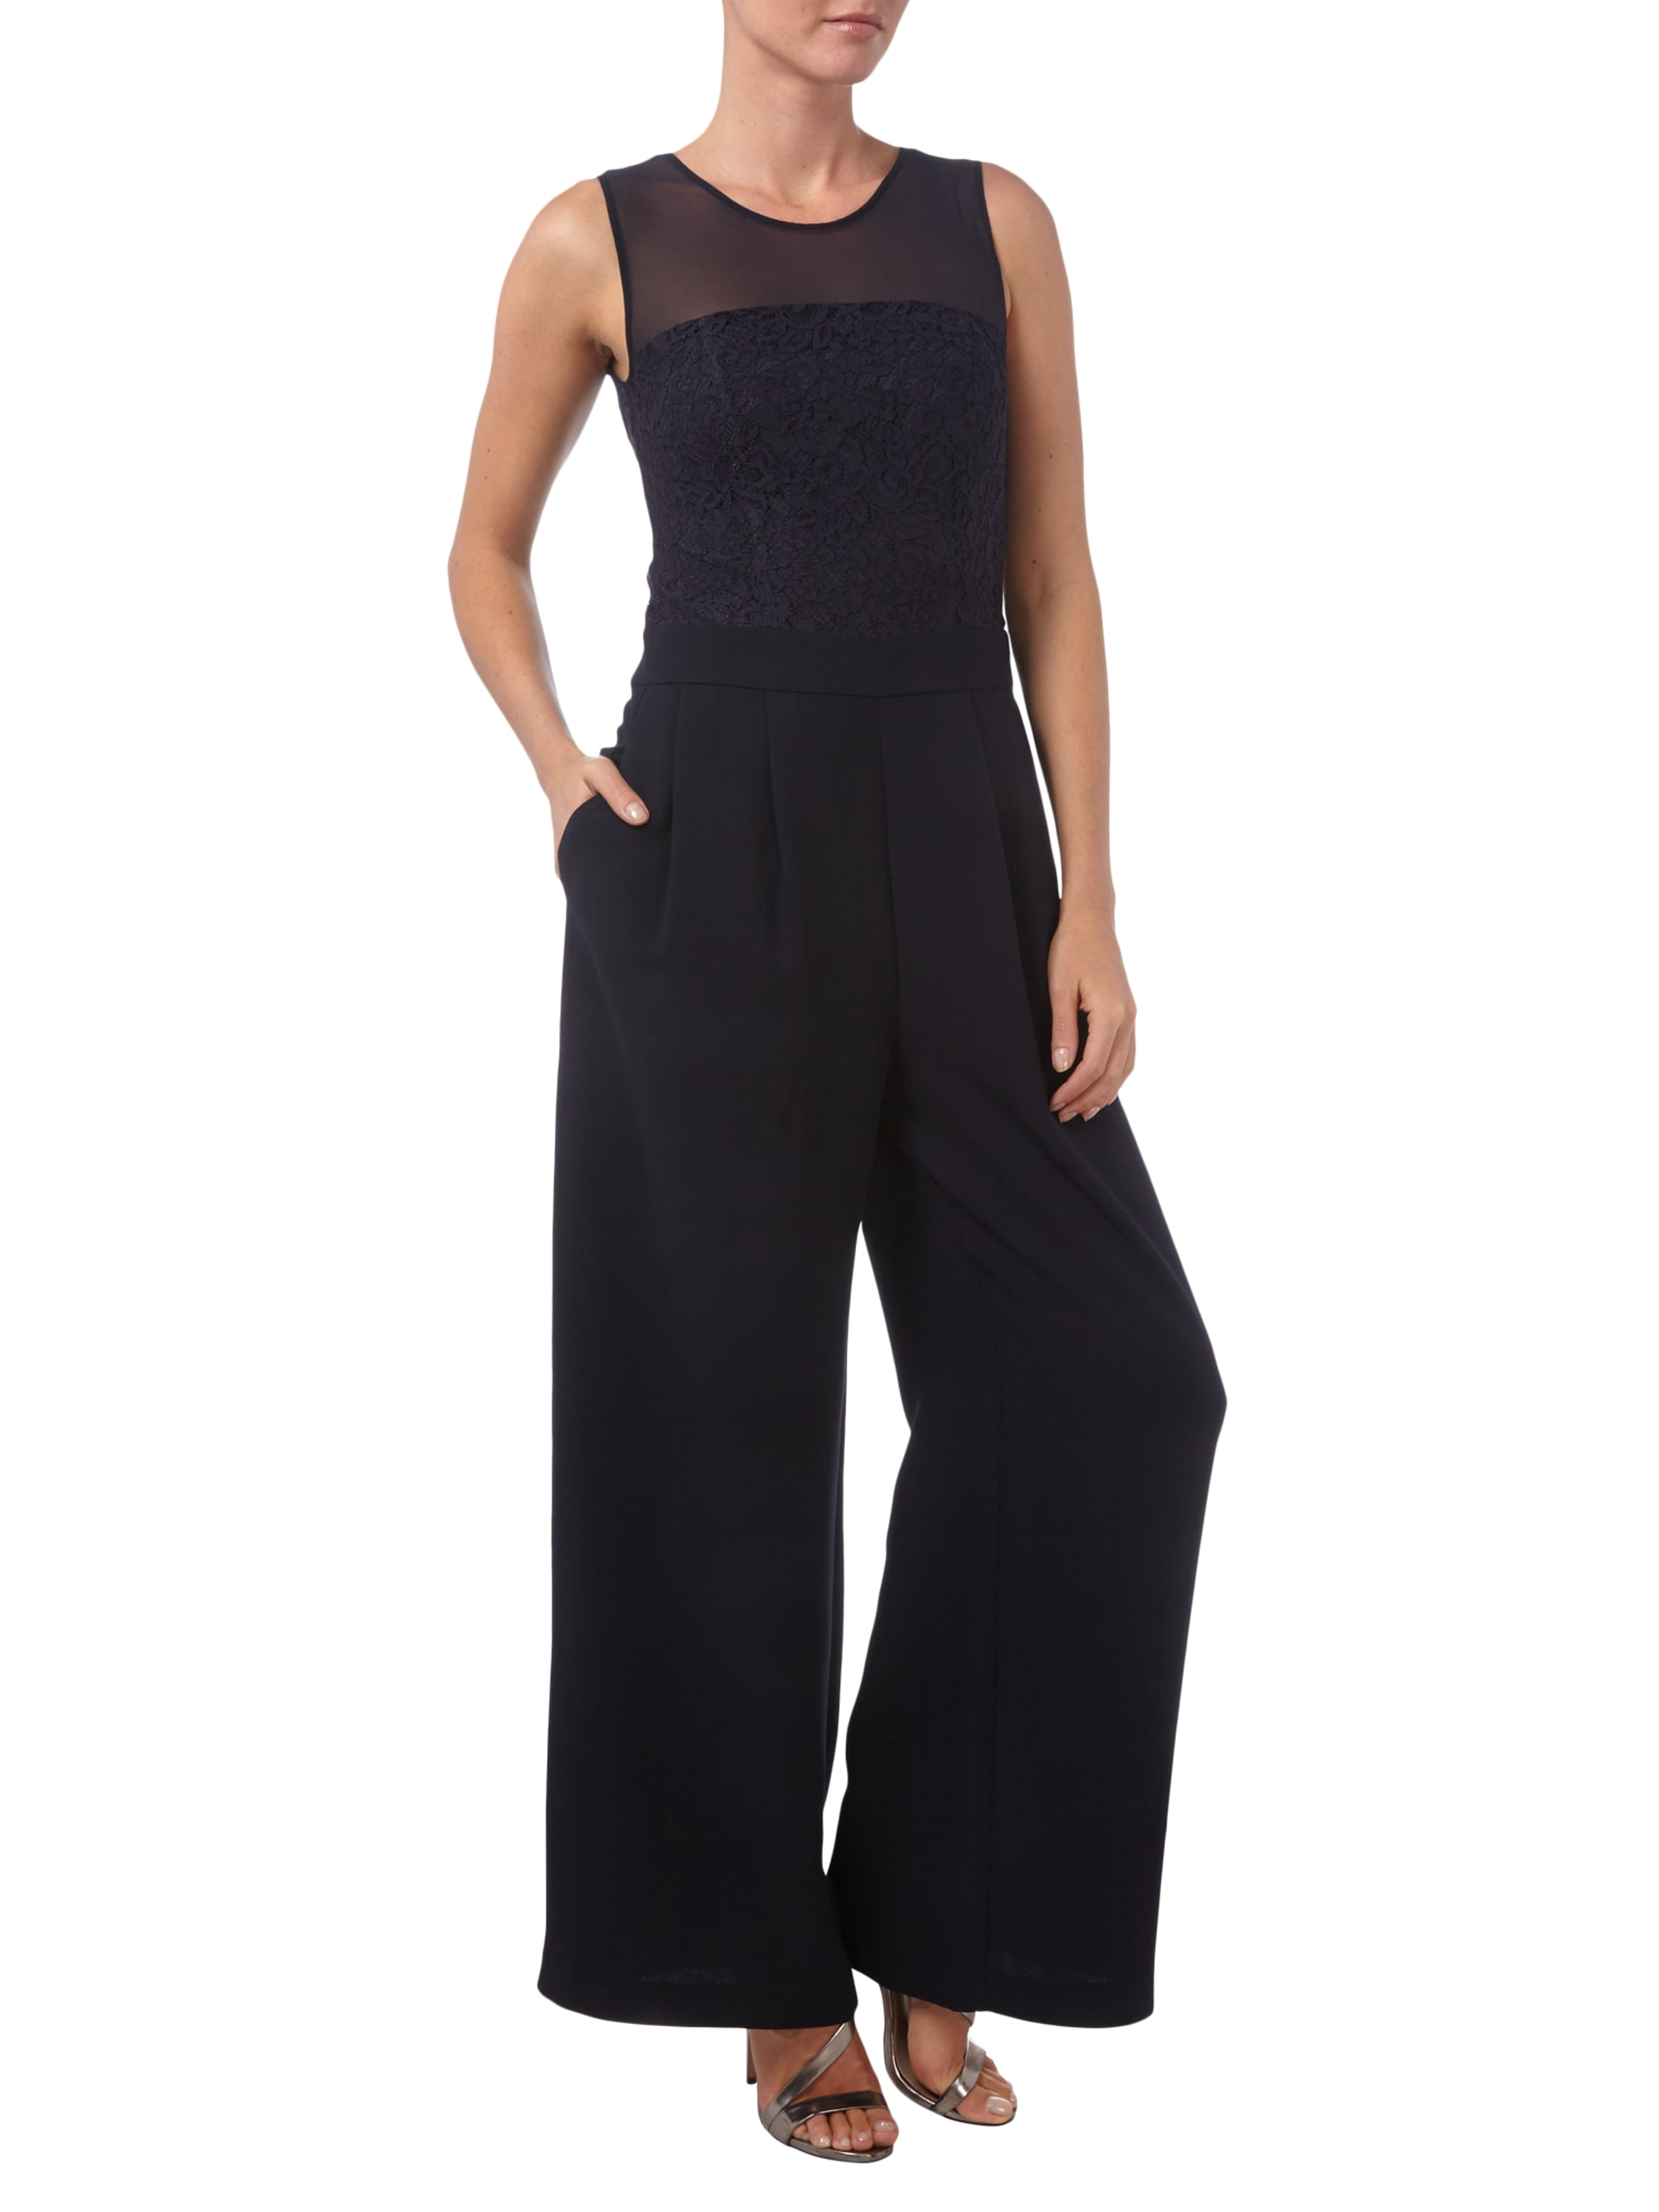 s oliver premium jumpsuit mit weit ausgestellter hose in. Black Bedroom Furniture Sets. Home Design Ideas